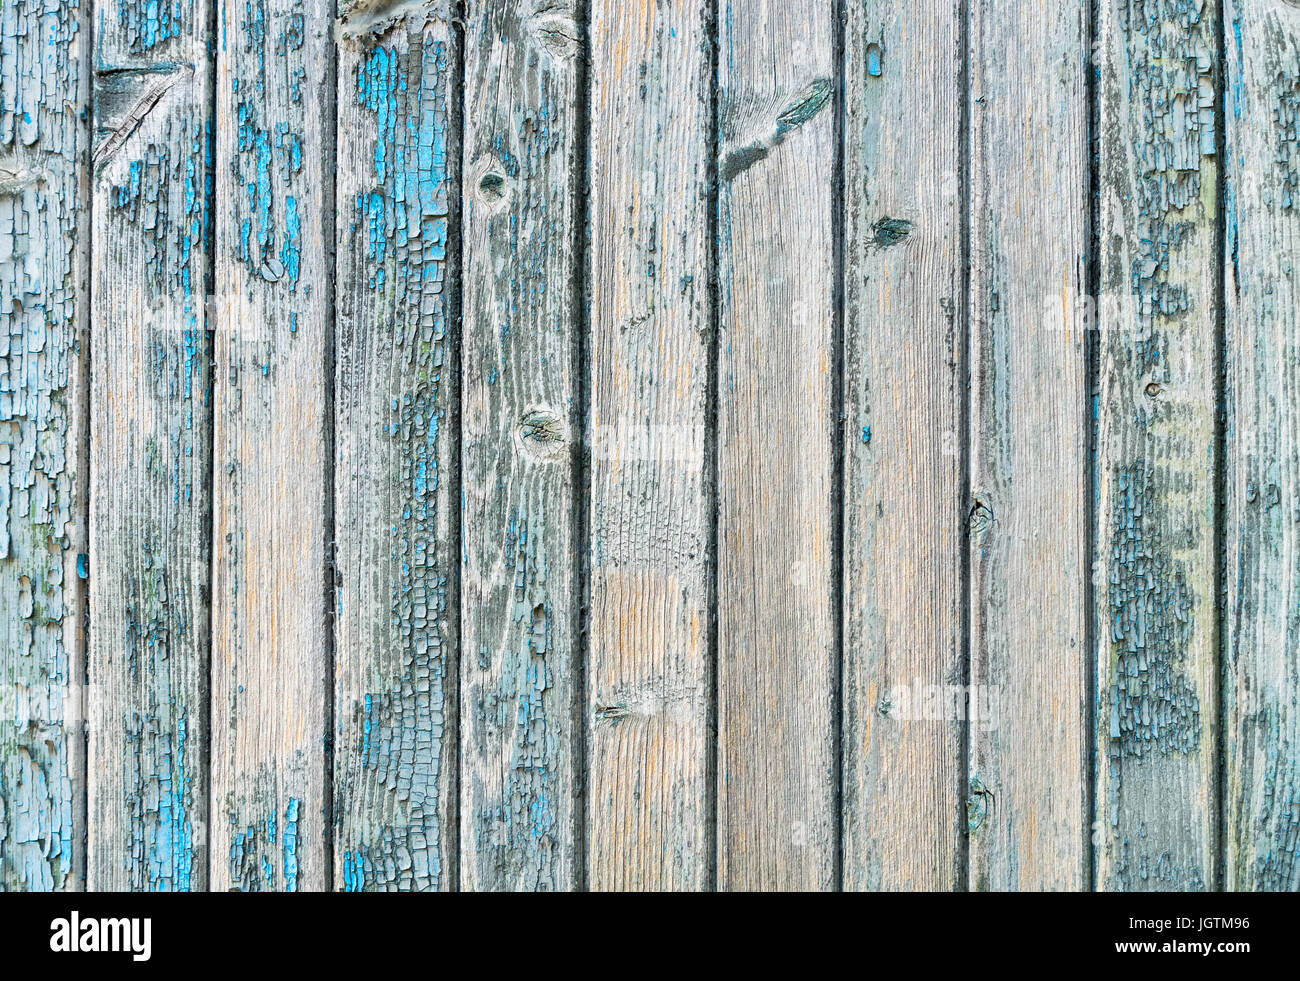 Old wood planks with paint peeling off. - Stock Image